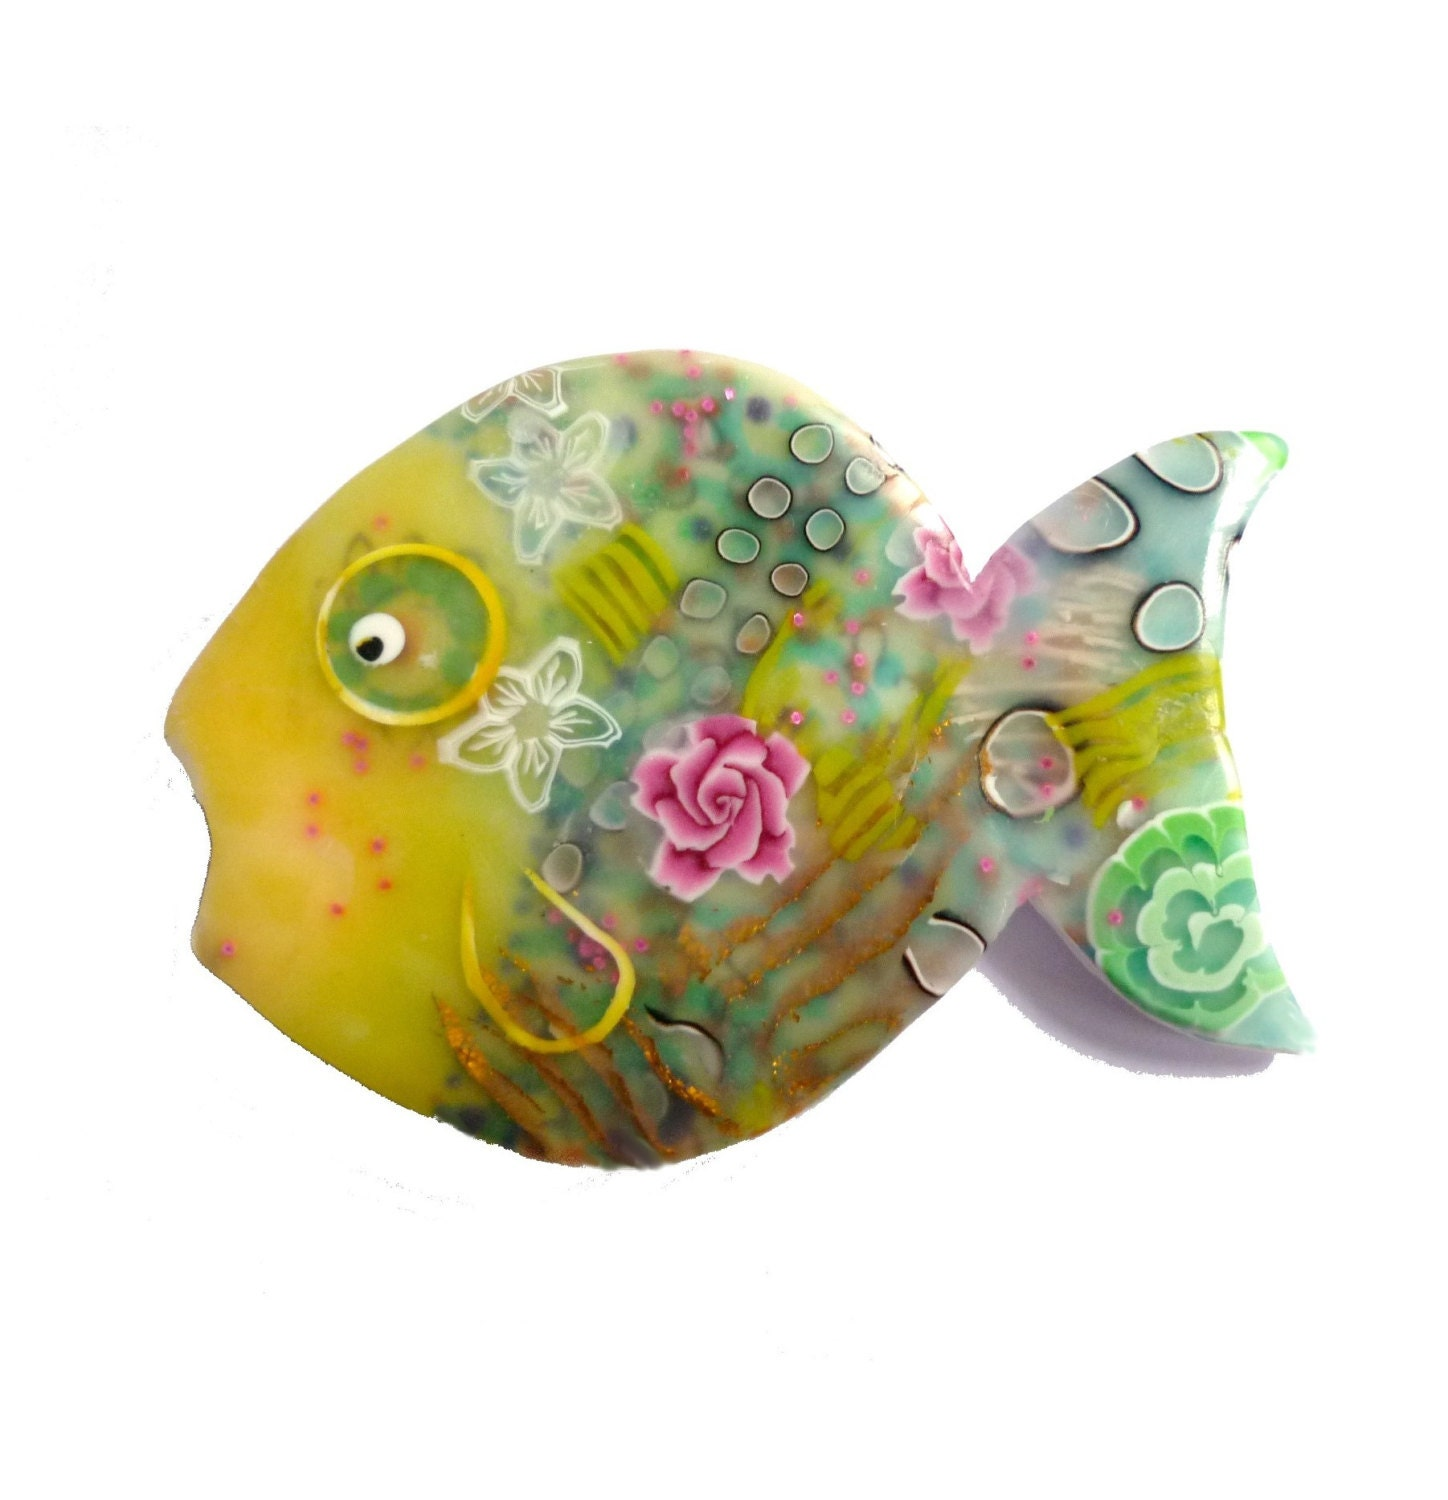 Brooch - ANDREAS the FISH - one of a kind - polymer clay - with pink ROSES - Chifonie